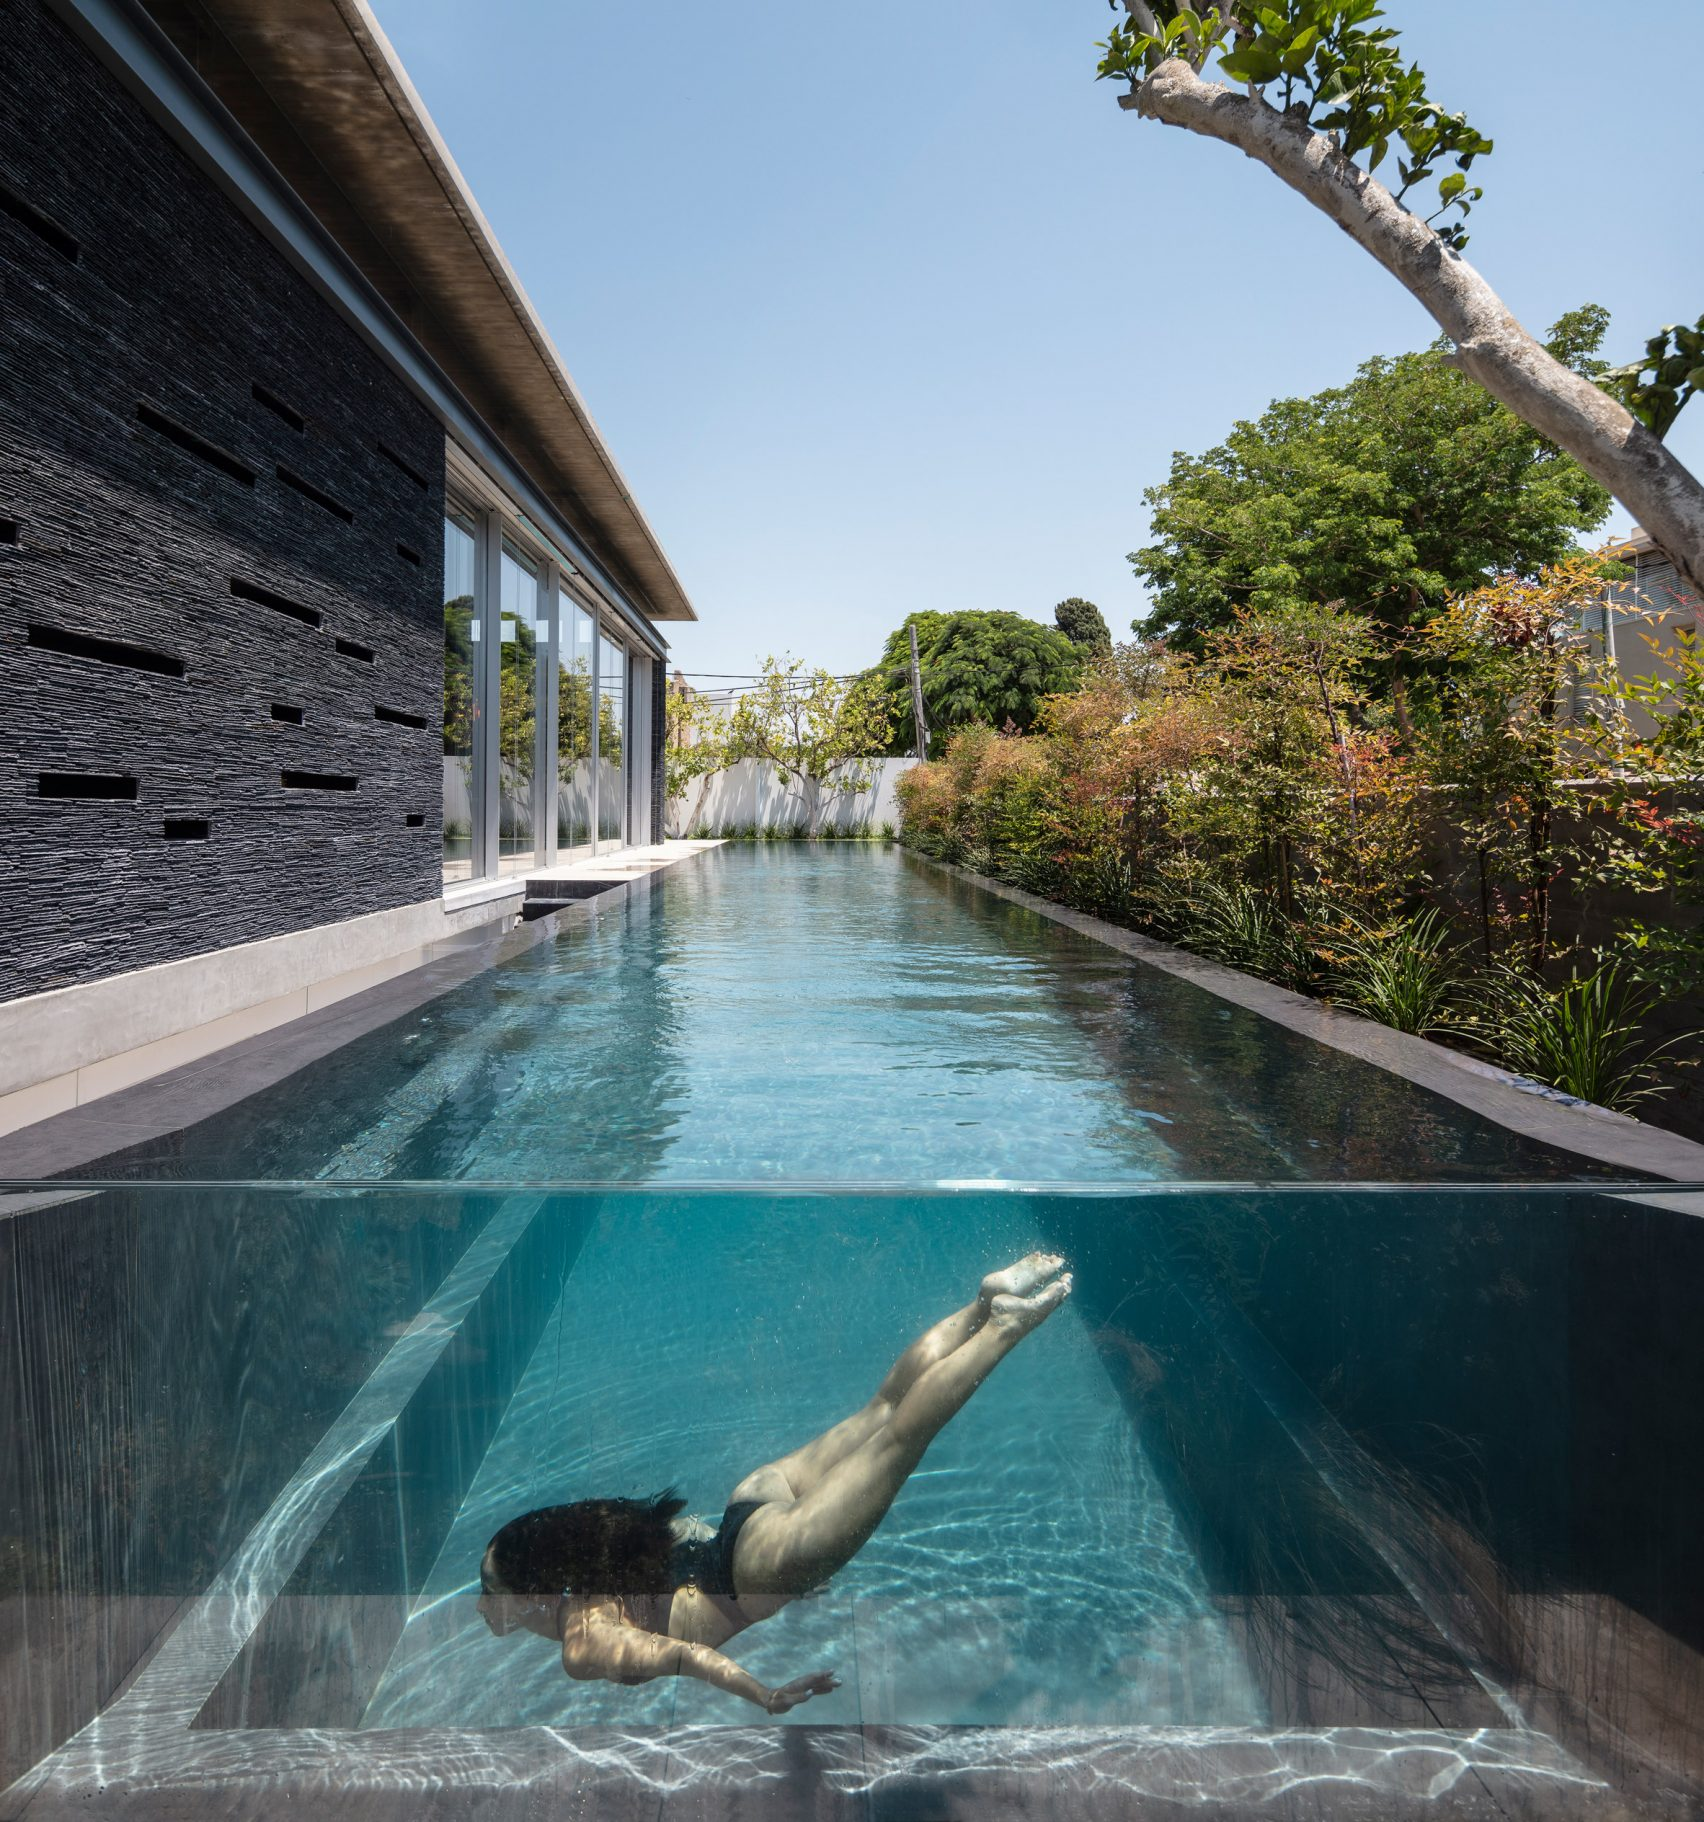 Pavilion House, Pitsou Kedem, Architect, luxury house, top house, luxurious, vip, billionaire, pool, linear swimming pool, lady, girl, sexy, Israel, floor, livingroom, bathroom,